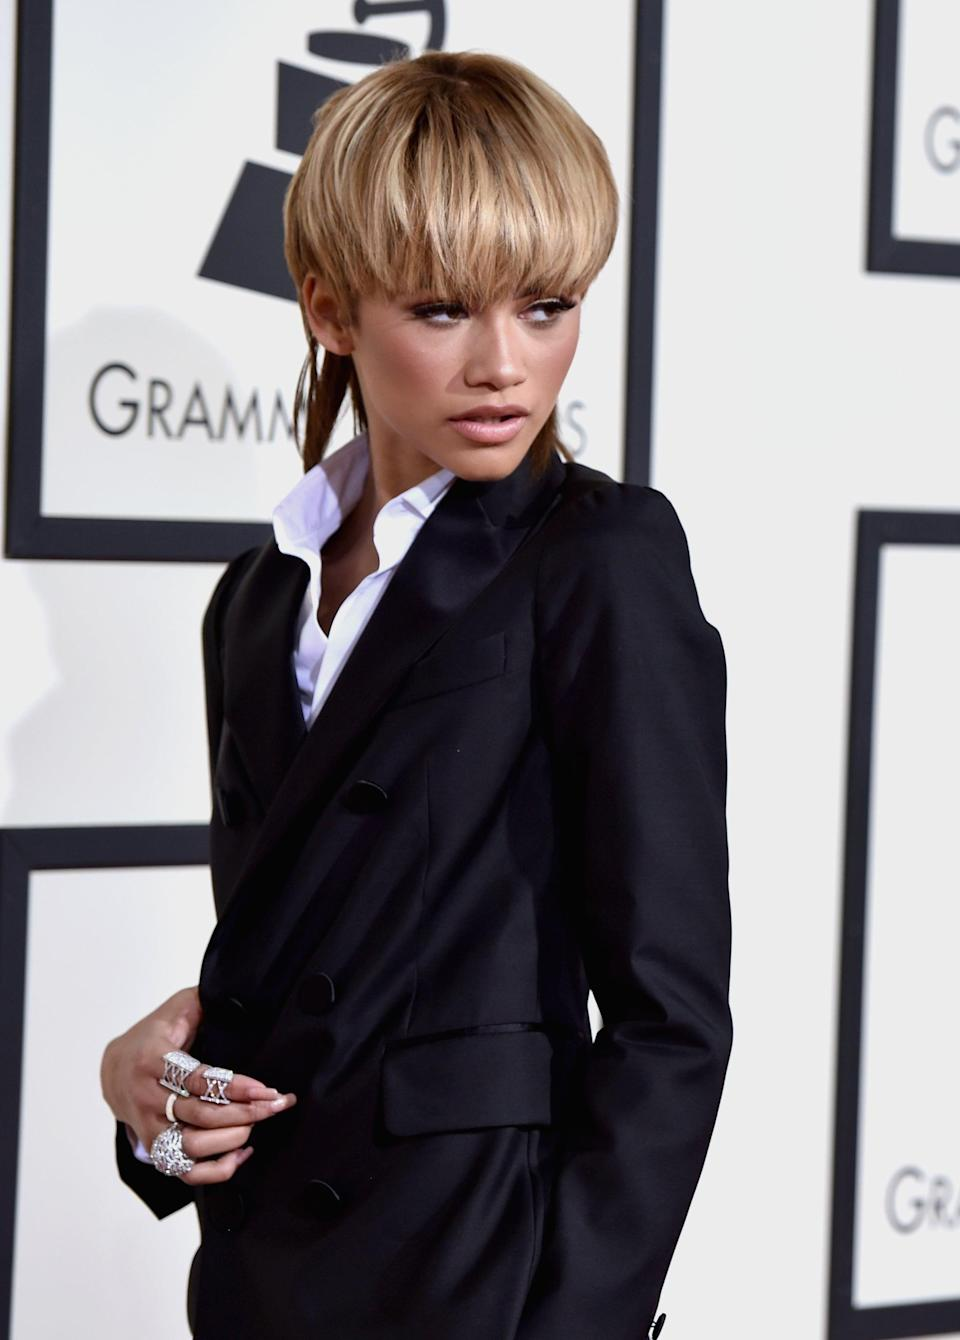 """<p><a class=""""link rapid-noclick-resp"""" href=""""https://www.popsugar.co.uk/Zendaya"""" rel=""""nofollow noopener"""" target=""""_blank"""" data-ylk=""""slk:Zendaya"""">Zendaya</a>'s appearance at the 2016 Grammy Awards was one big tribute to David Bowie, who had died just a month before of liver cancer. Though her headline-making mullet borrowed from Bowie's Ziggy Stardust era, <a class=""""link rapid-noclick-resp"""" href=""""https://www.popsugar.co.uk/Zendaya"""" rel=""""nofollow noopener"""" target=""""_blank"""" data-ylk=""""slk:Zendaya"""">Zendaya</a> told MTV News she was primarily <a href=""""http://www.mtv.com/news/2740489/zendaya-grammys-david-bowie/"""" class=""""link rapid-noclick-resp"""" rel=""""nofollow noopener"""" target=""""_blank"""" data-ylk=""""slk:inspired by his Thin White Duke stage persona"""">inspired by his Thin White Duke stage persona</a> of the mid-1970s. Even her <a href=""""https://www.popsugar.com/fashion/Zendaya-Outfit-2016-Grammys-40199175"""" class=""""link rapid-noclick-resp"""" rel=""""nofollow noopener"""" target=""""_blank"""" data-ylk=""""slk:double-breasted Dsquared2 suit"""">double-breasted Dsquared2 suit</a> closely resembled the tuxedo, shown below, Bowie wore to attend the Grammys in 1975!</p>"""